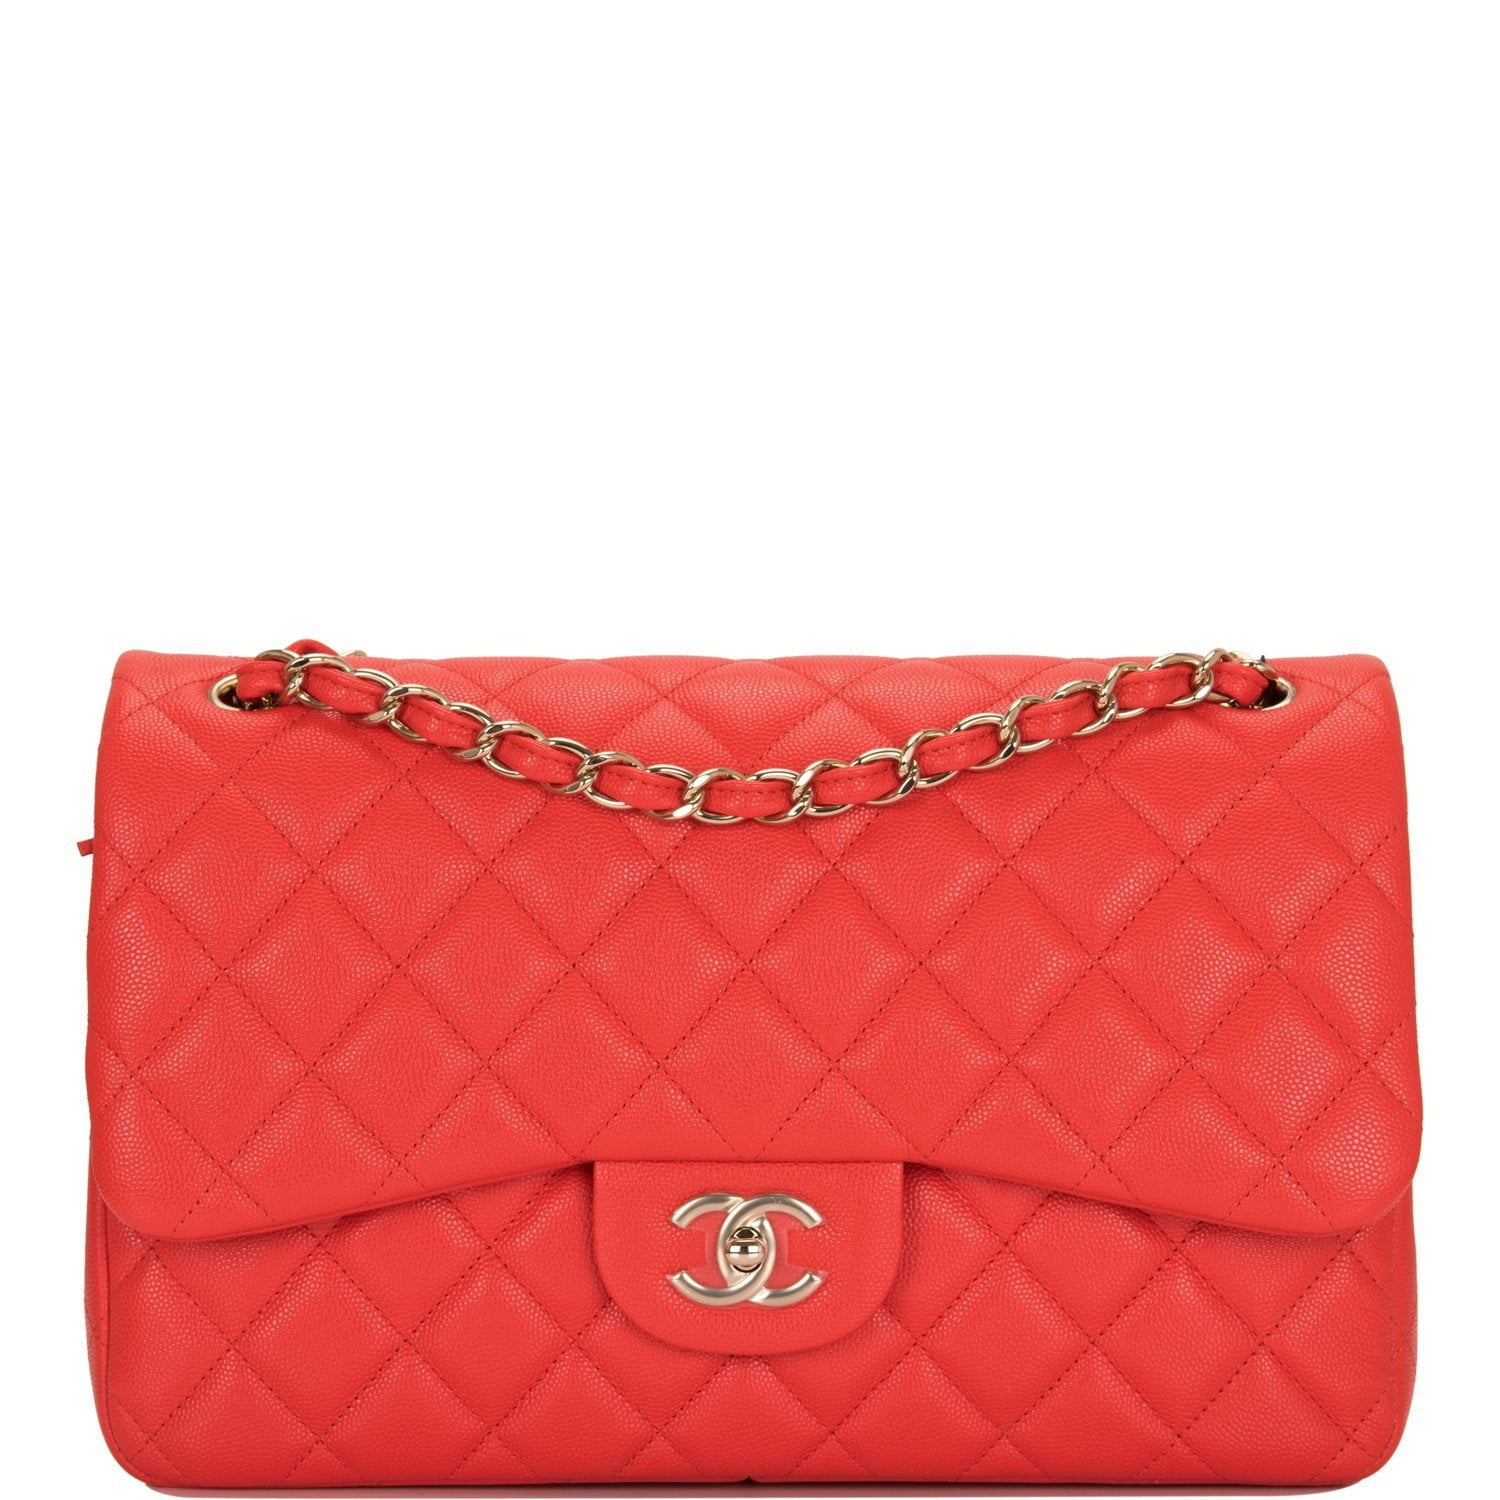 e2bc89dc229 Chanel Red Shiny Quilted Caviar Jumbo Classic Double Flap Bag – Madison  Avenue Couture